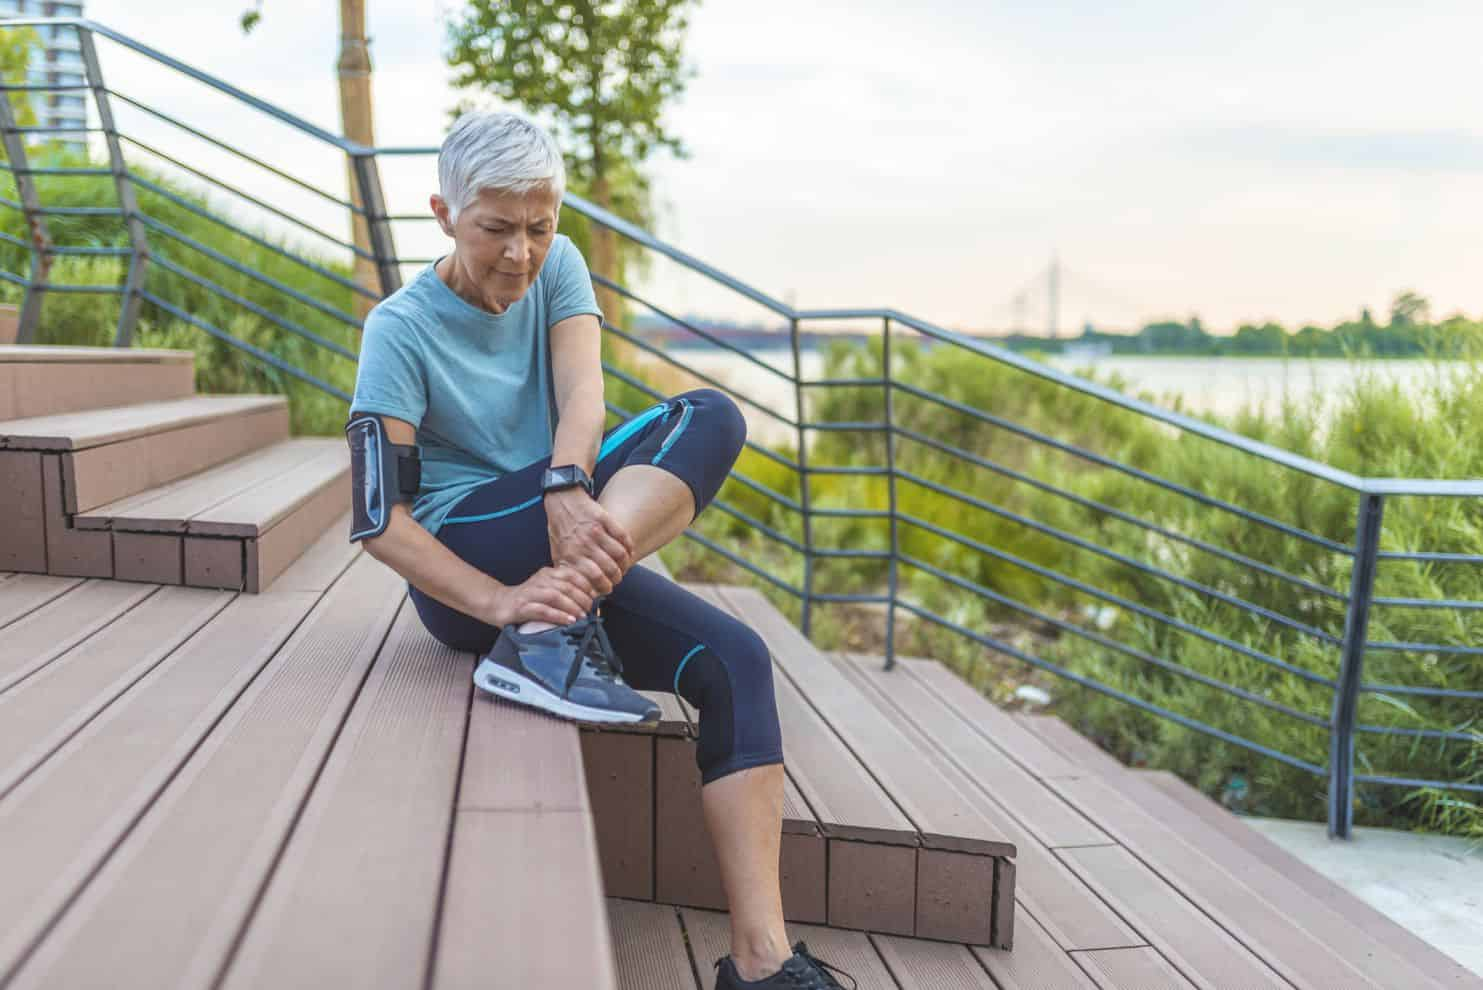 causes of foot and ankle pain